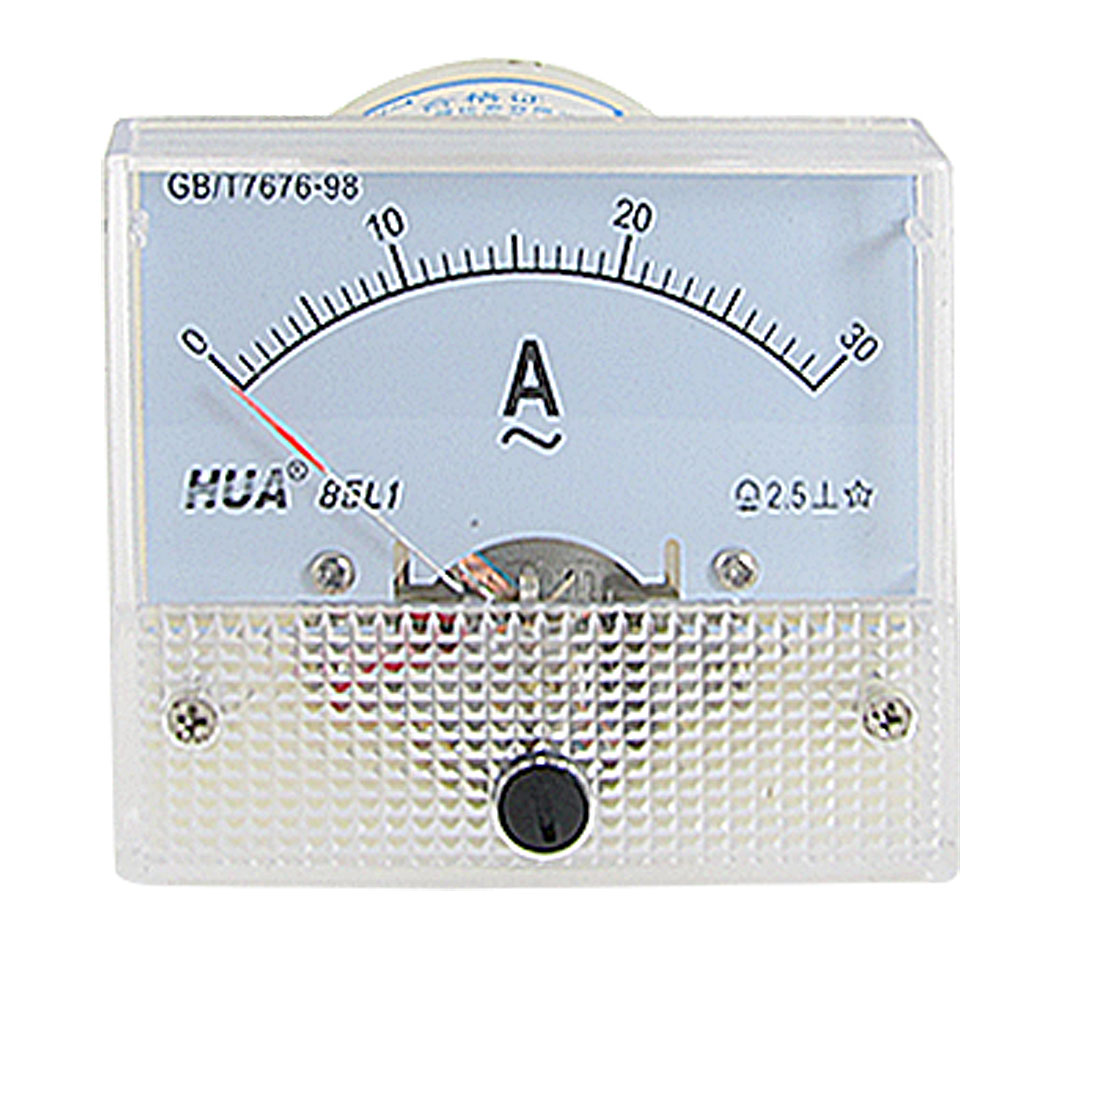 85L1 Plastic Housing AC 0-30A Rectangle Analog Panel Meter Ammeter Gauge